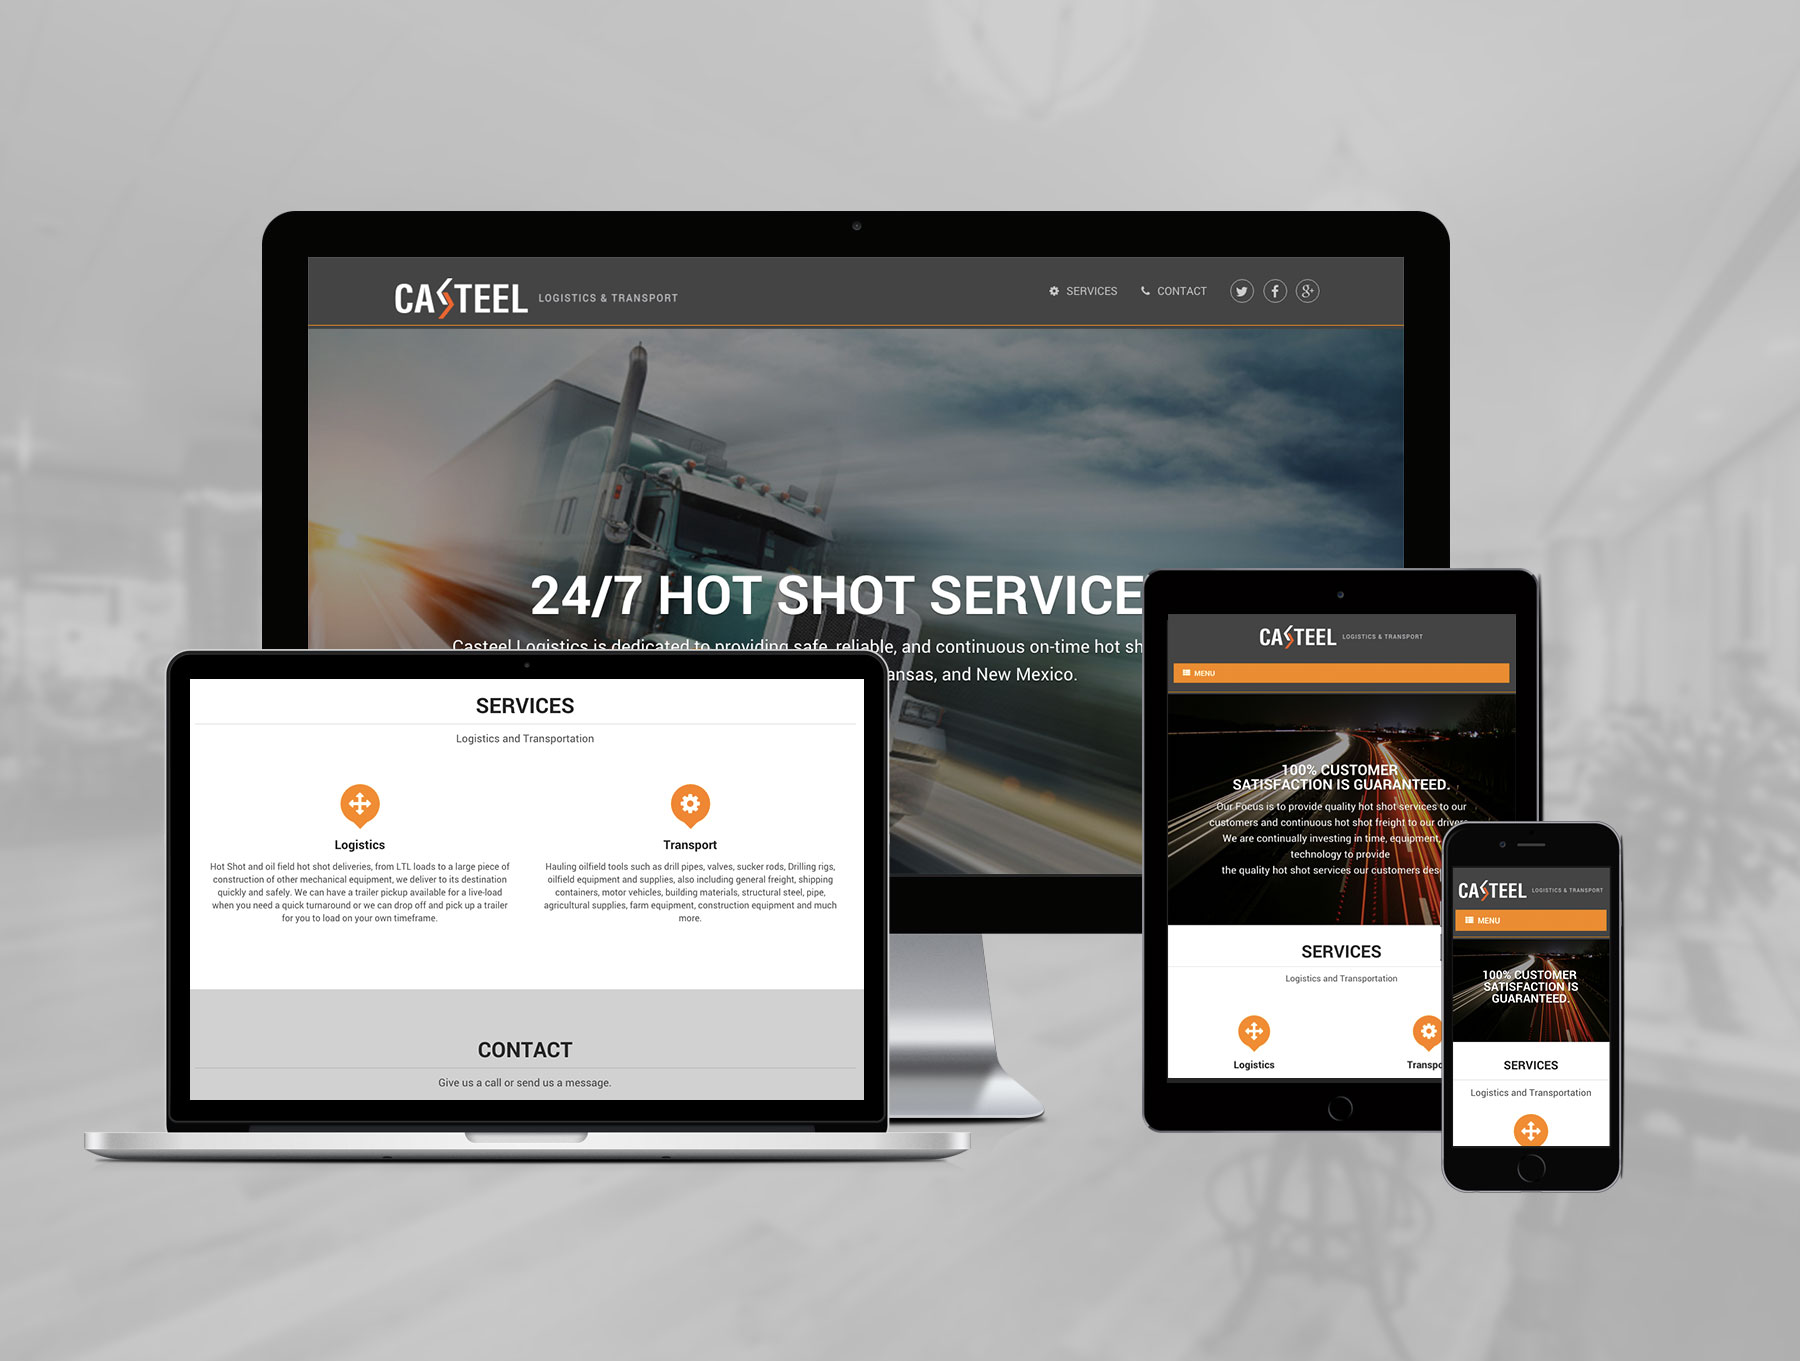 web design showcase - casteel logistics